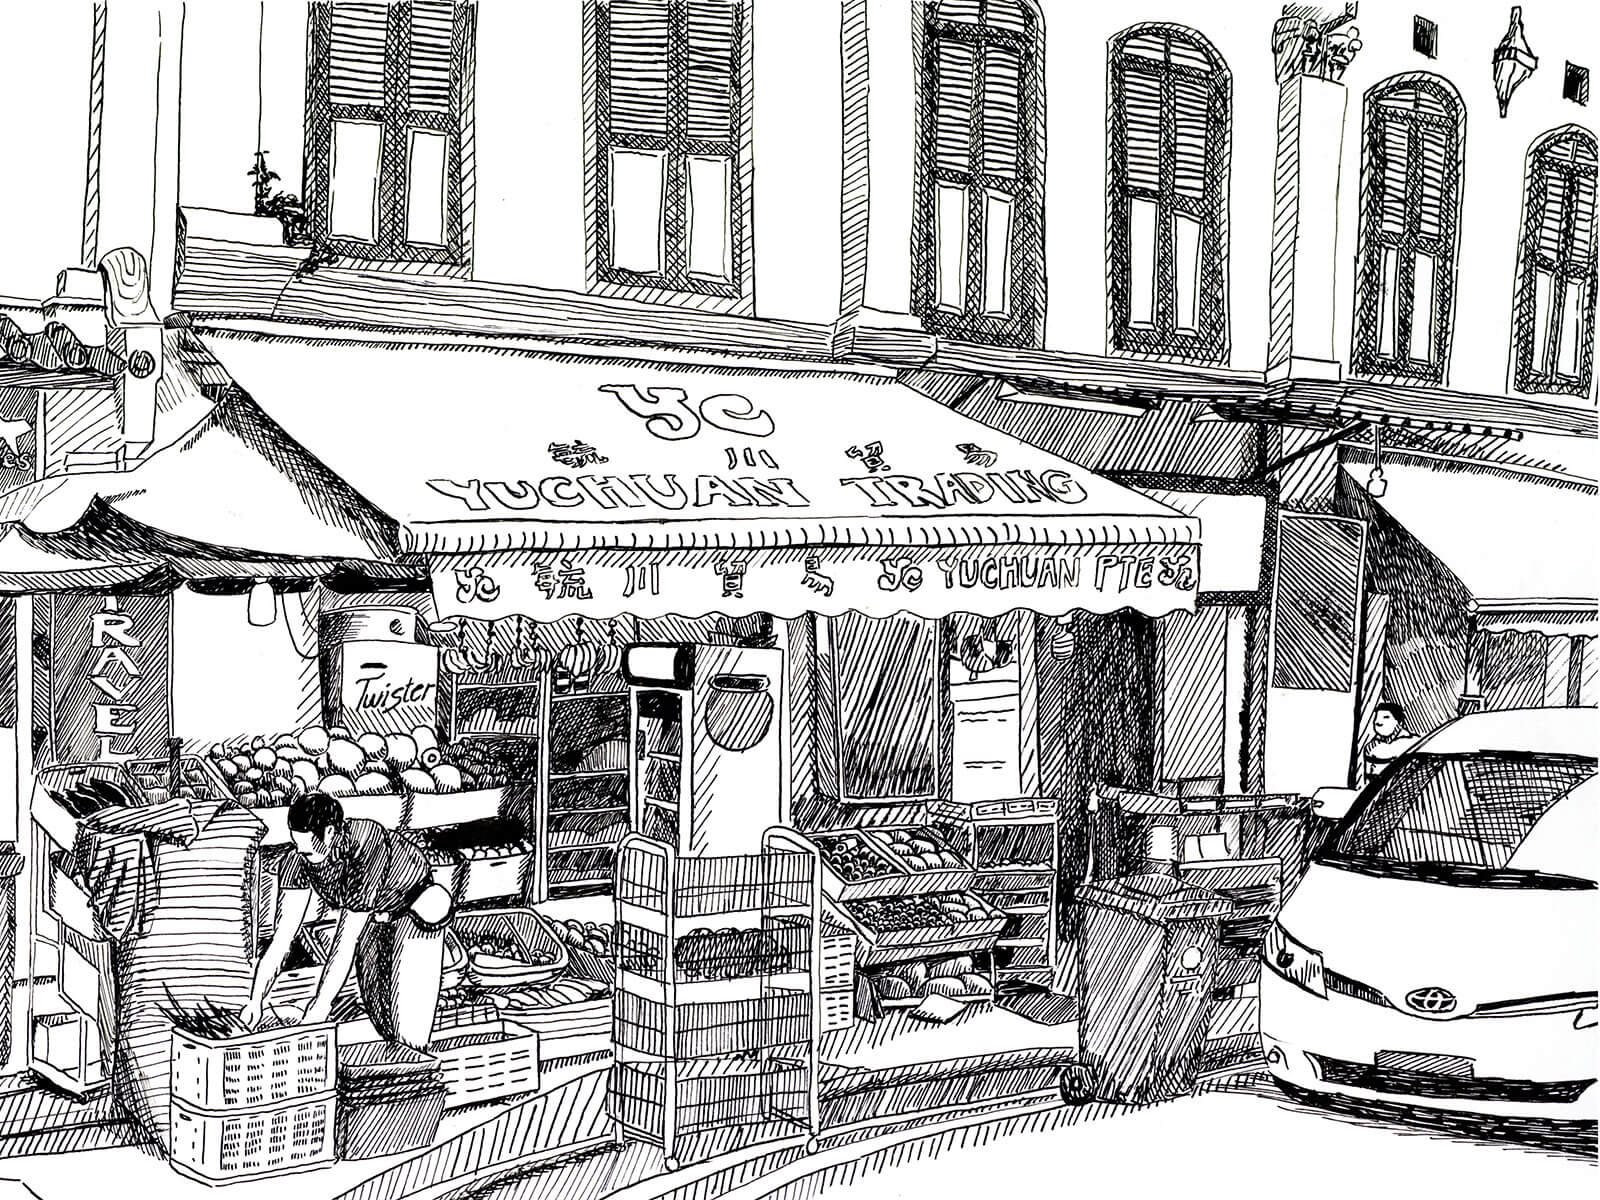 Black-and-white sketch of a grocer stocking produce at a market on the ground floor of a low-rise building.